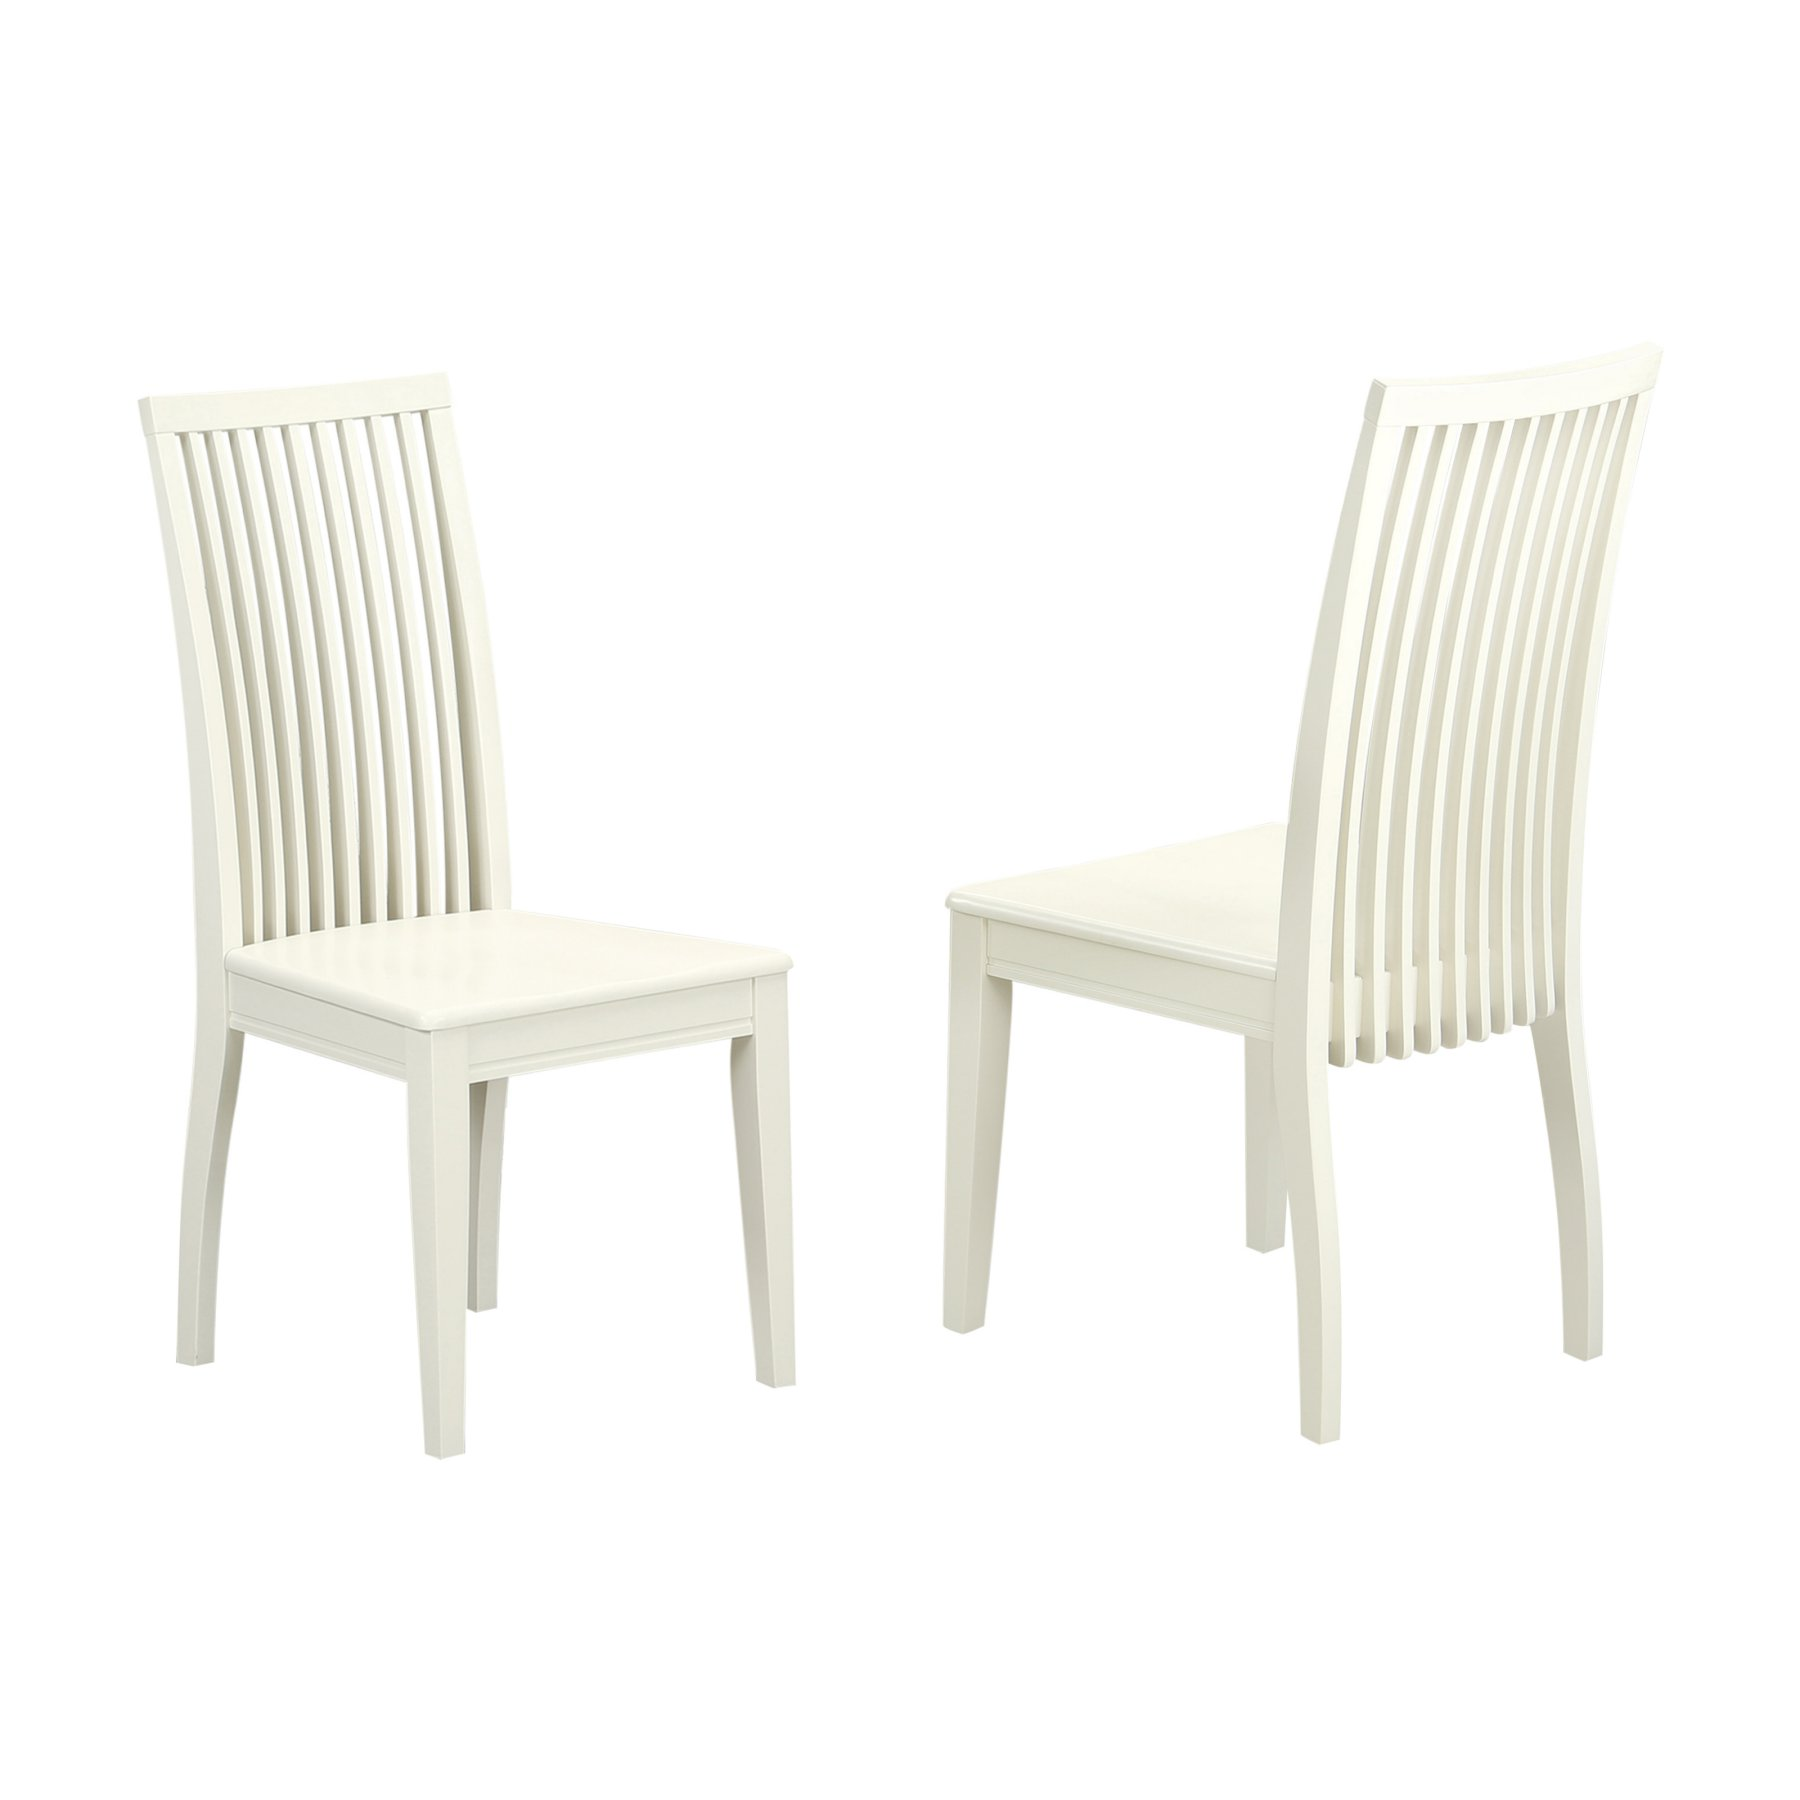 Cool East West Furniture Ipswich Dining Chairs With Slatted Back Gmtry Best Dining Table And Chair Ideas Images Gmtryco